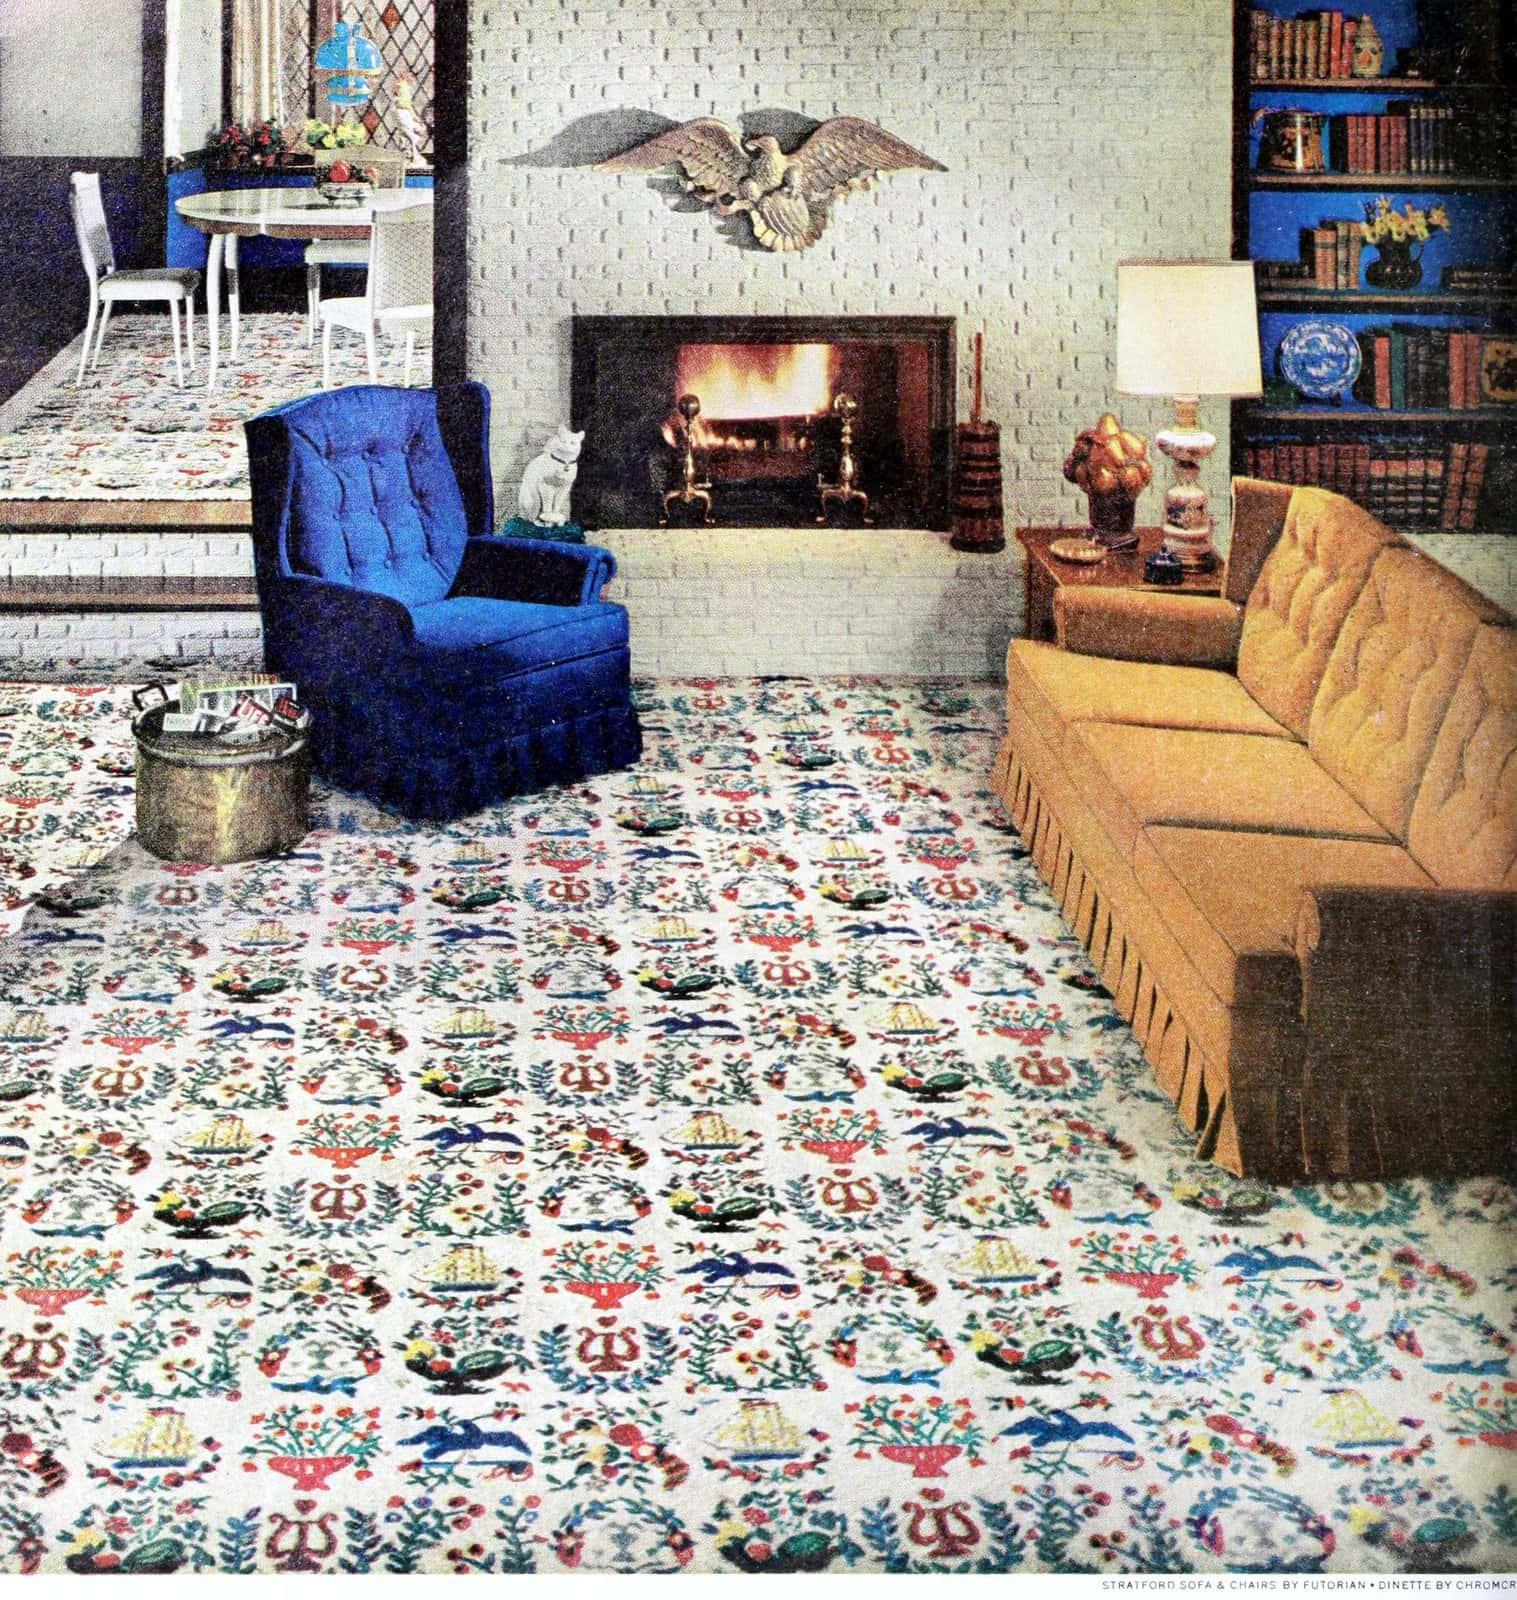 Patterned early American motif carpeting in a 1960s living room